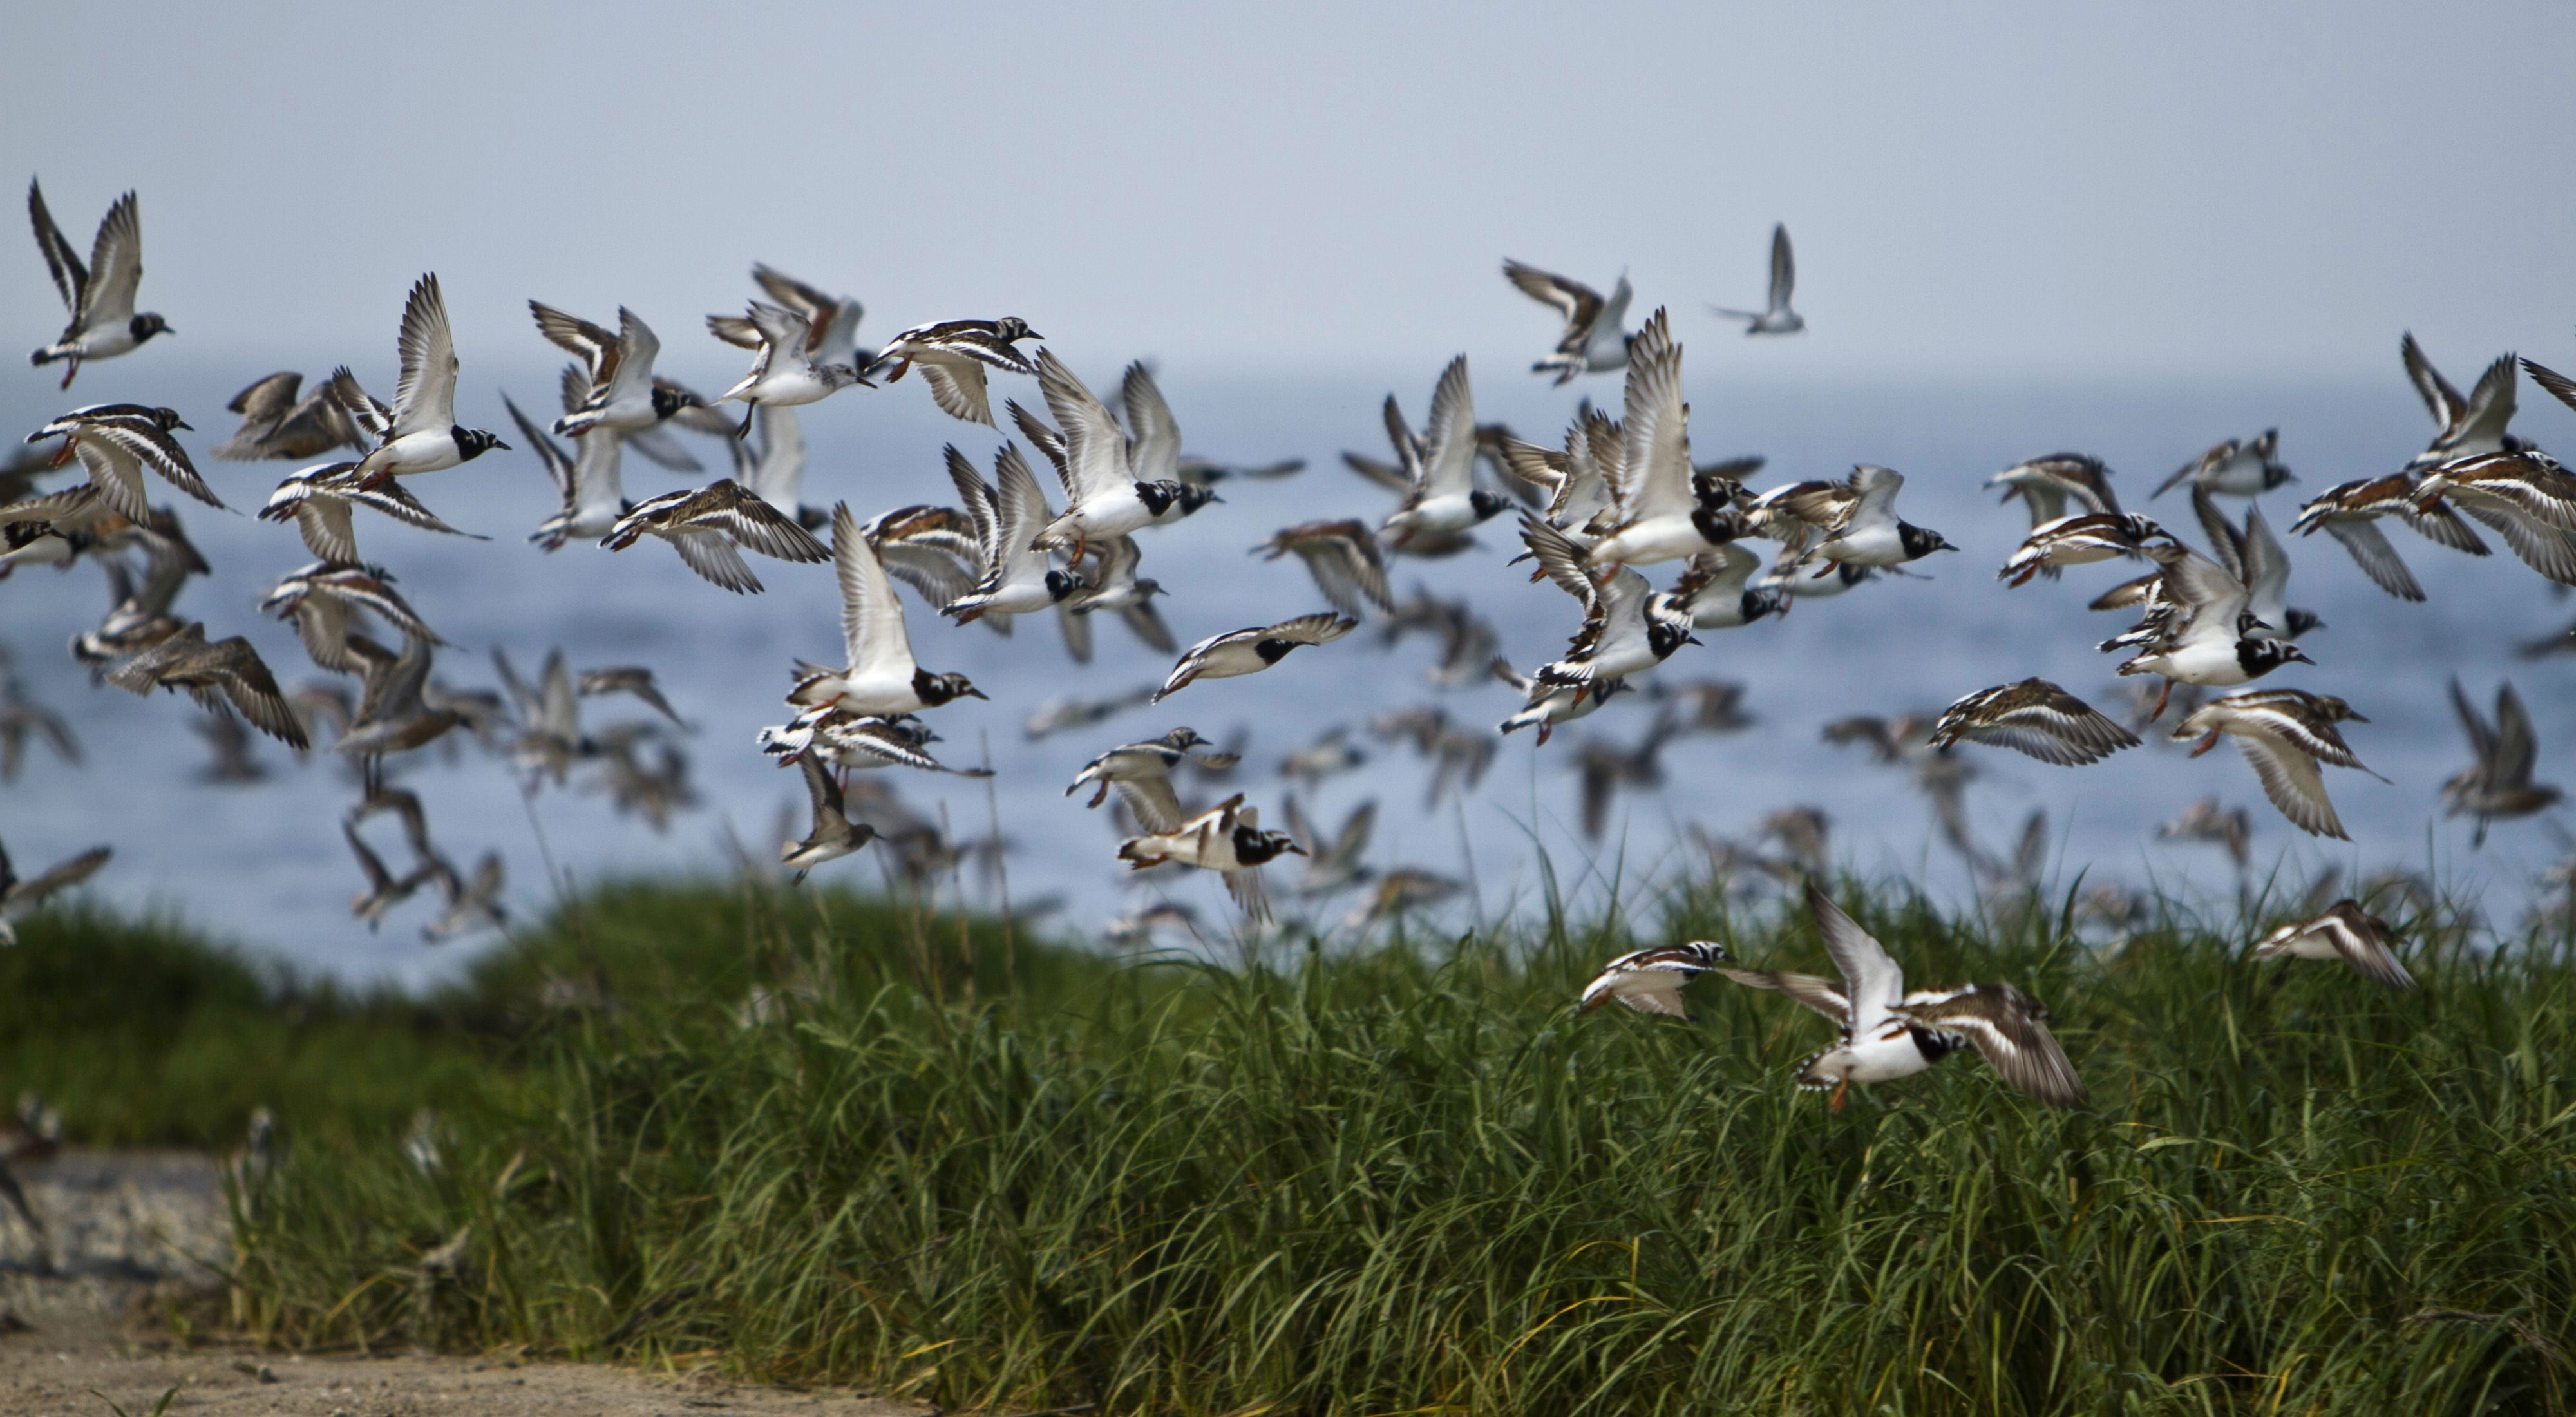 Shorebirds rely on the beaches and marshes of Gandy's Beach.